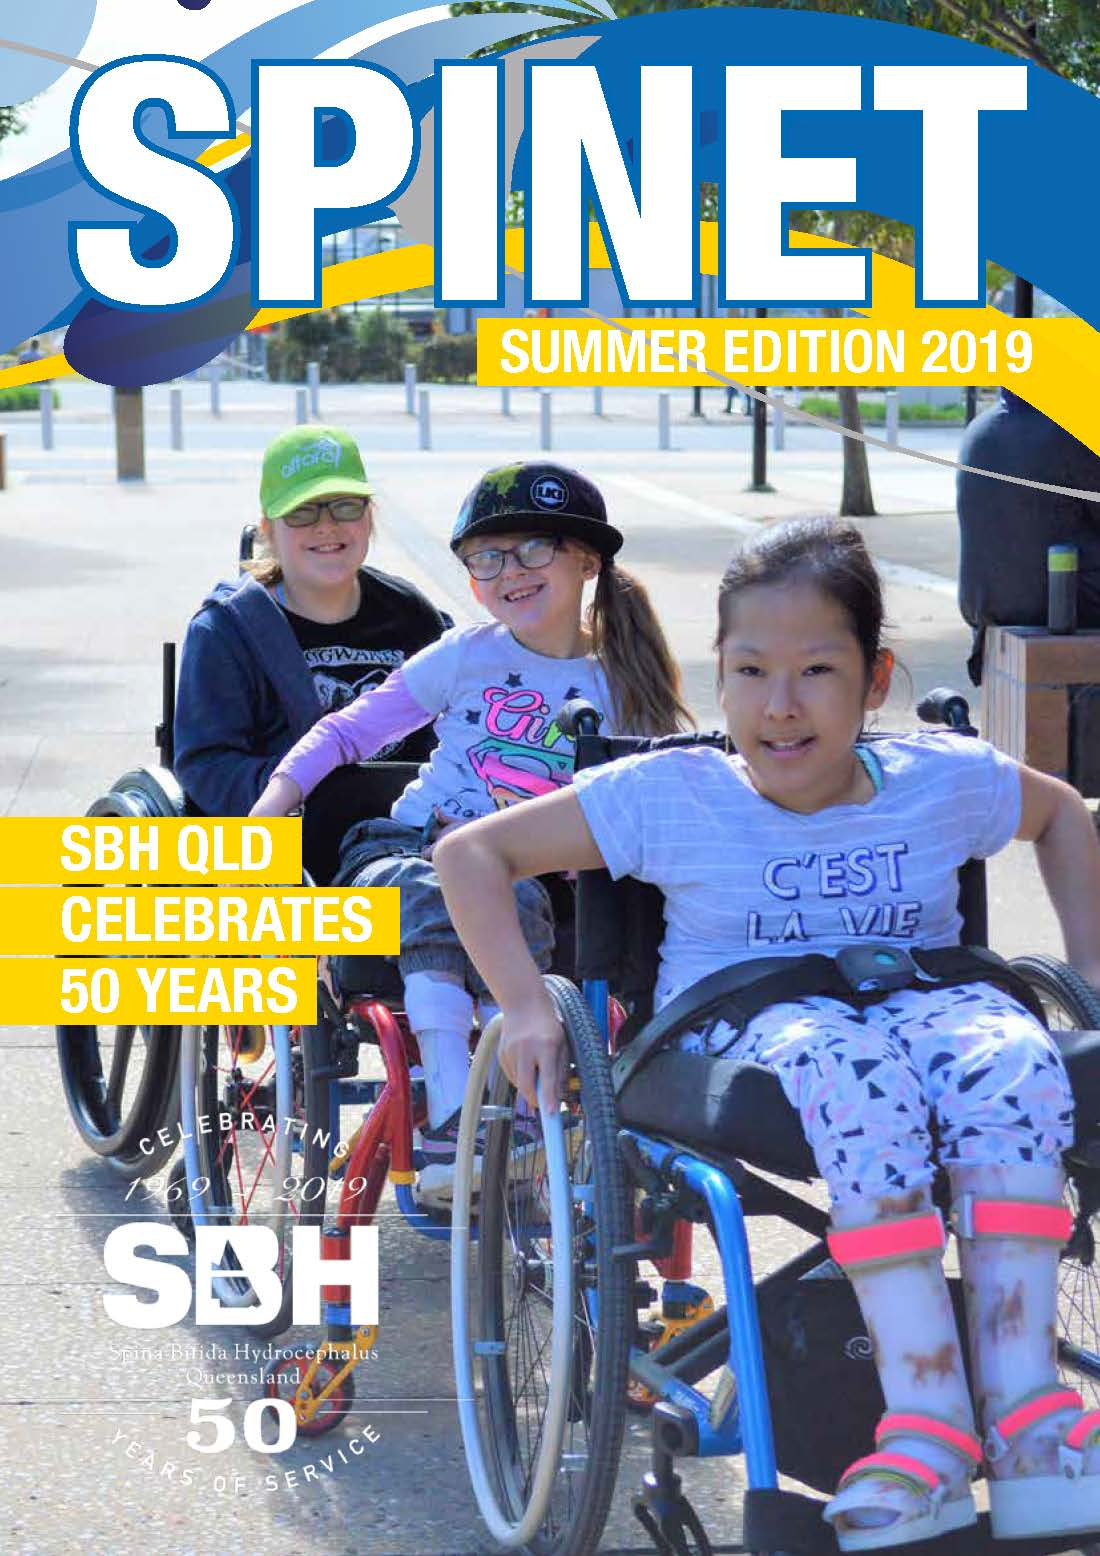 Spina Bifida Spinet Summer19